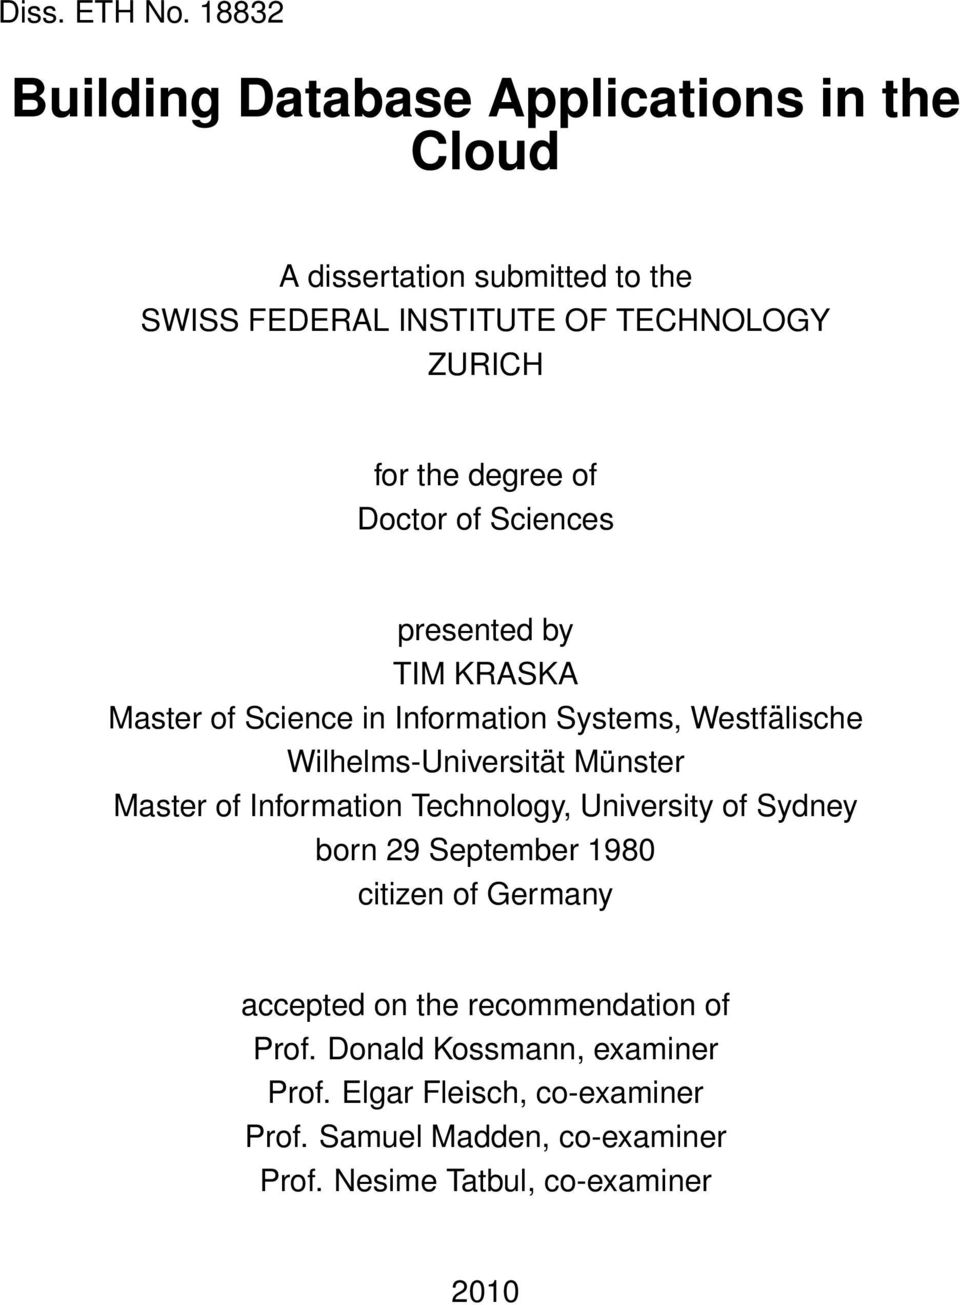 degree of Doctor of Sciences presented by TIM KRASKA Master of Science in Information Systems, Westfälische Wilhelms-Universität Münster